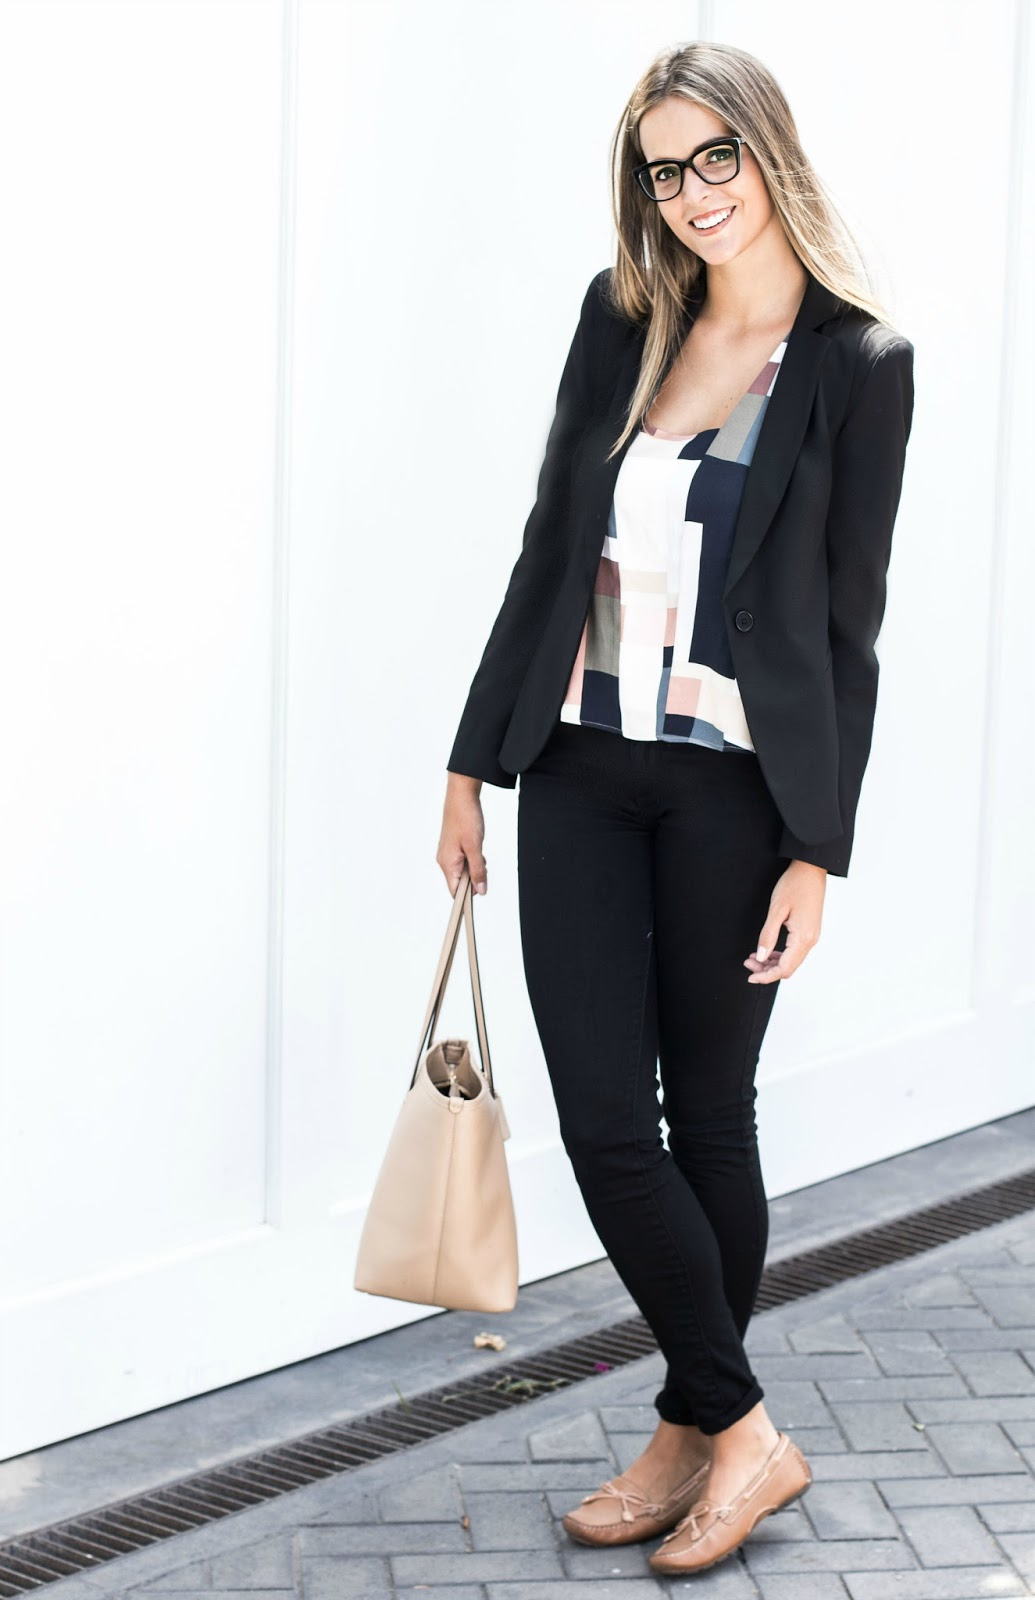 marvelous outfit entrevista laboral mujer y